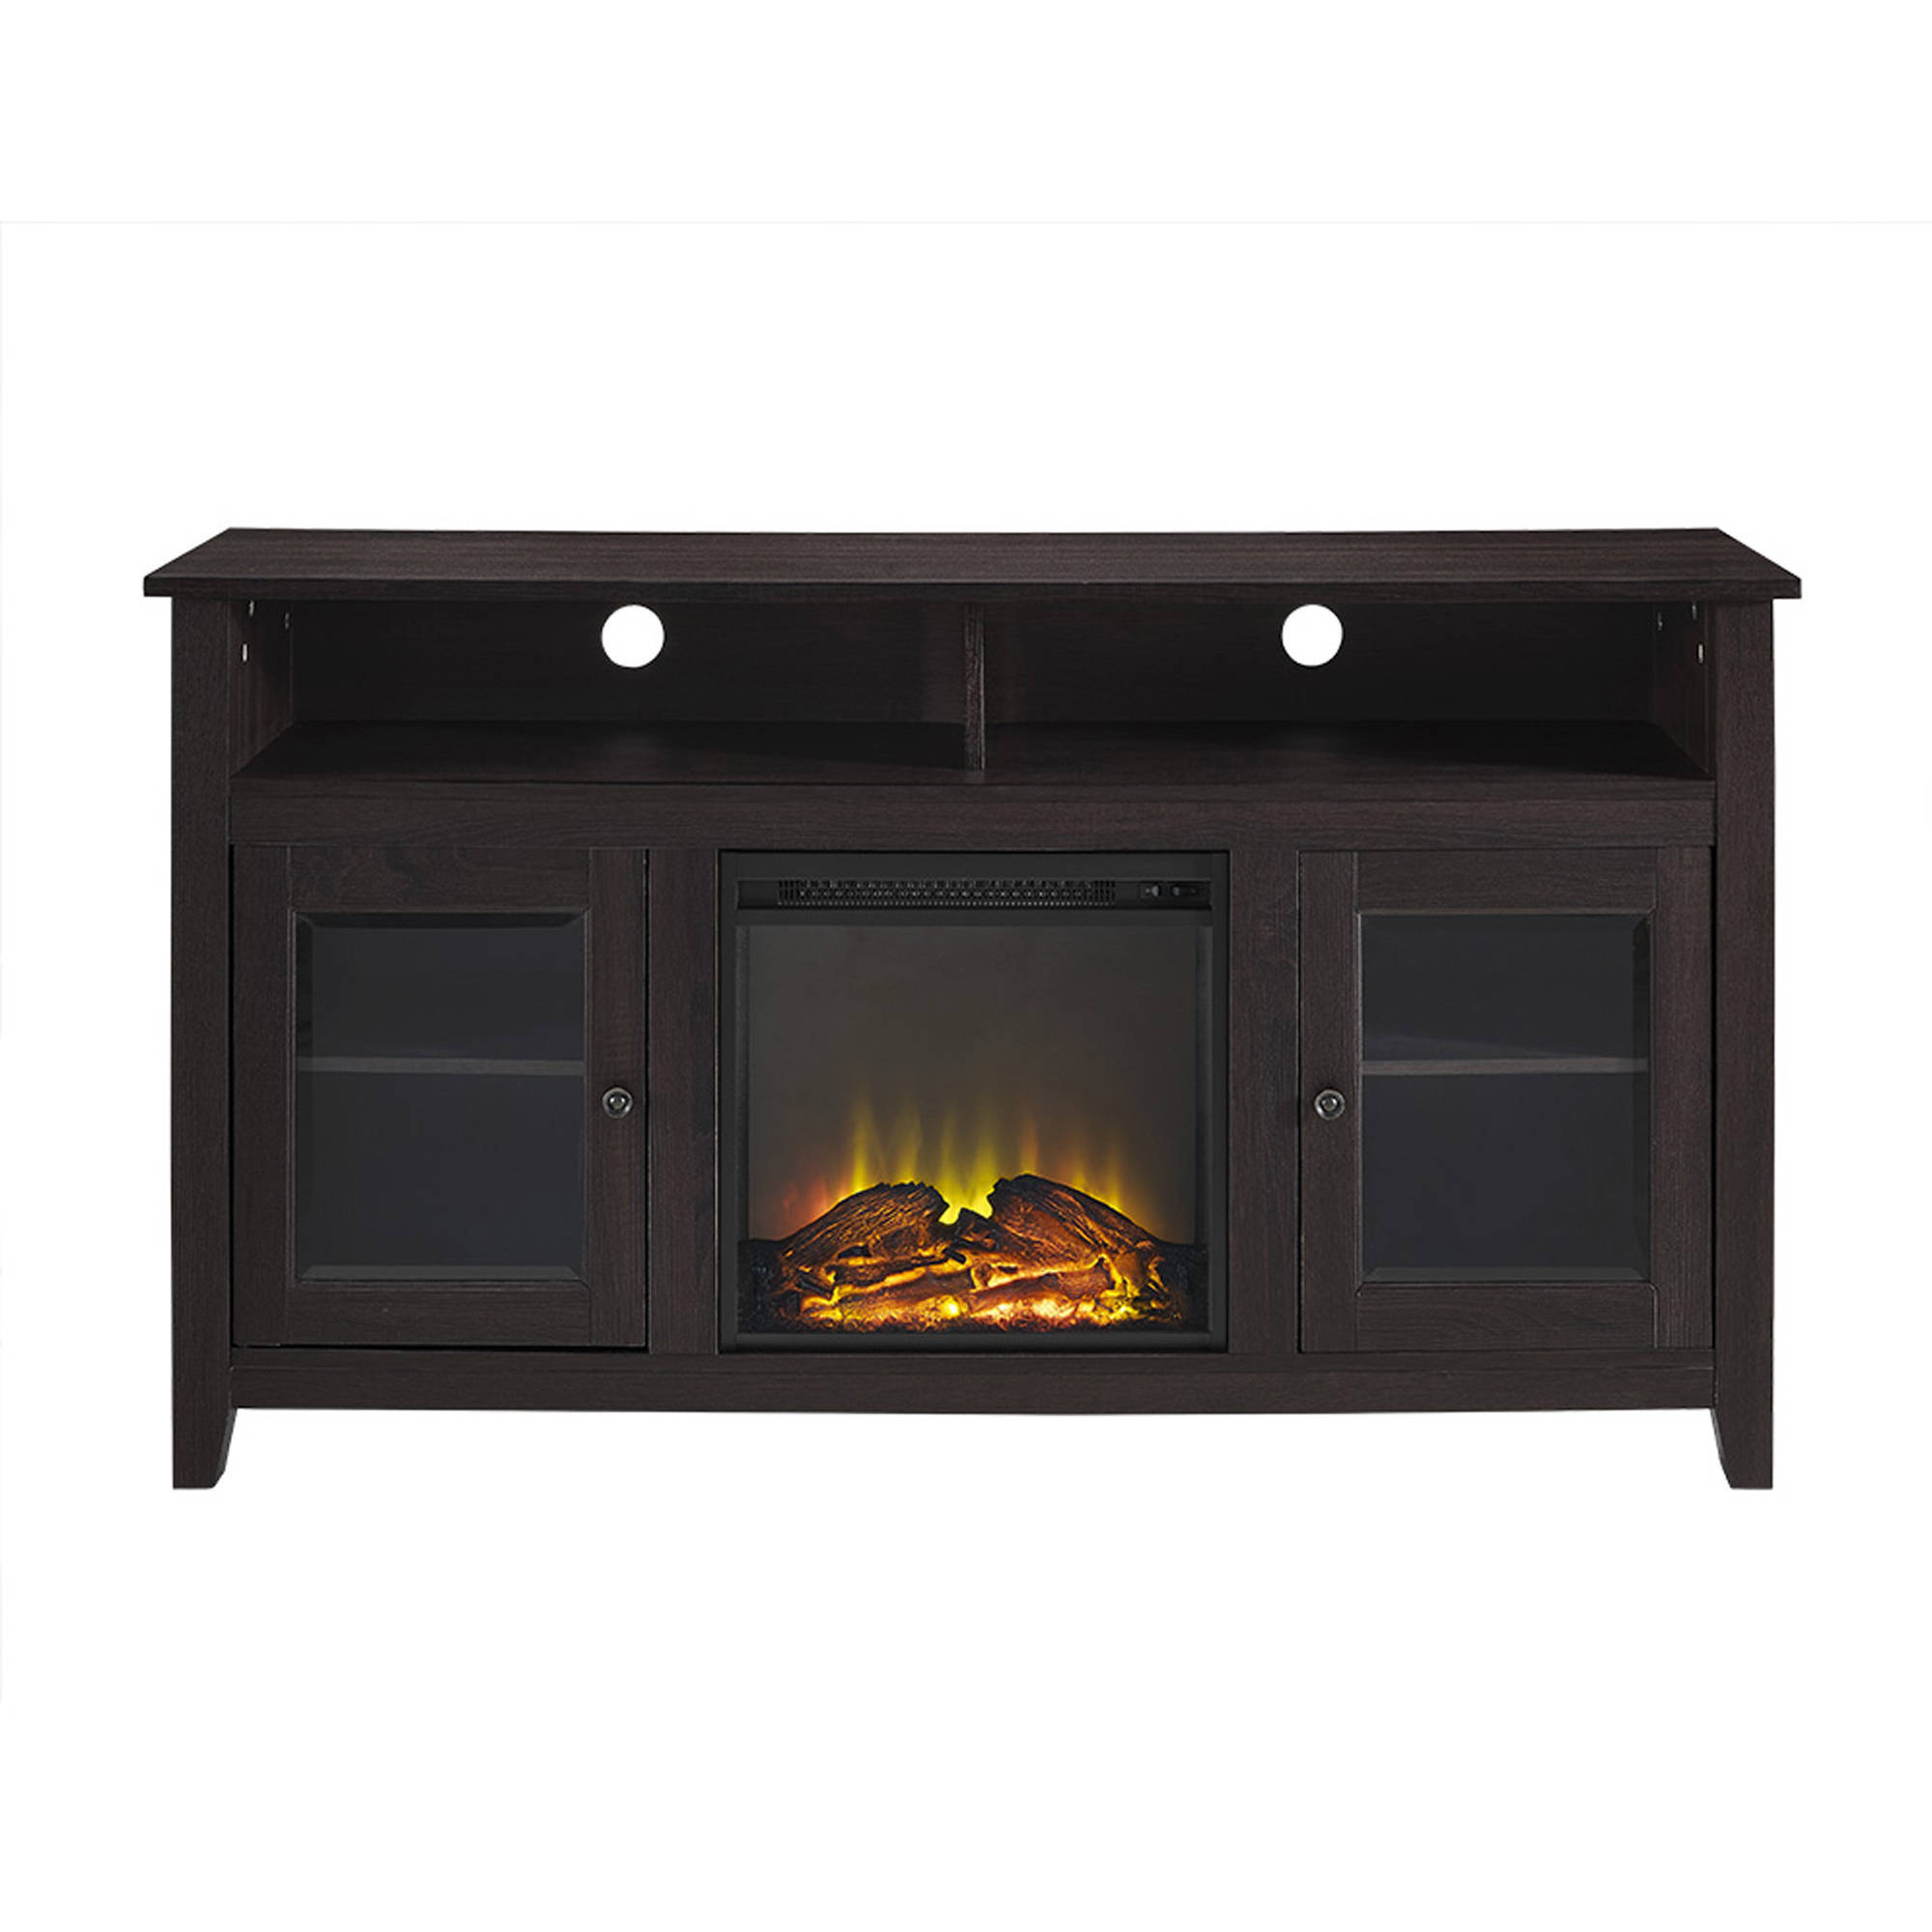 """58"""" Wood Highboy Fireplace Tv Stand For Tvs Up To 60 In Jace Tv Stands For Tvs Up To 58"""" (View 8 of 15)"""